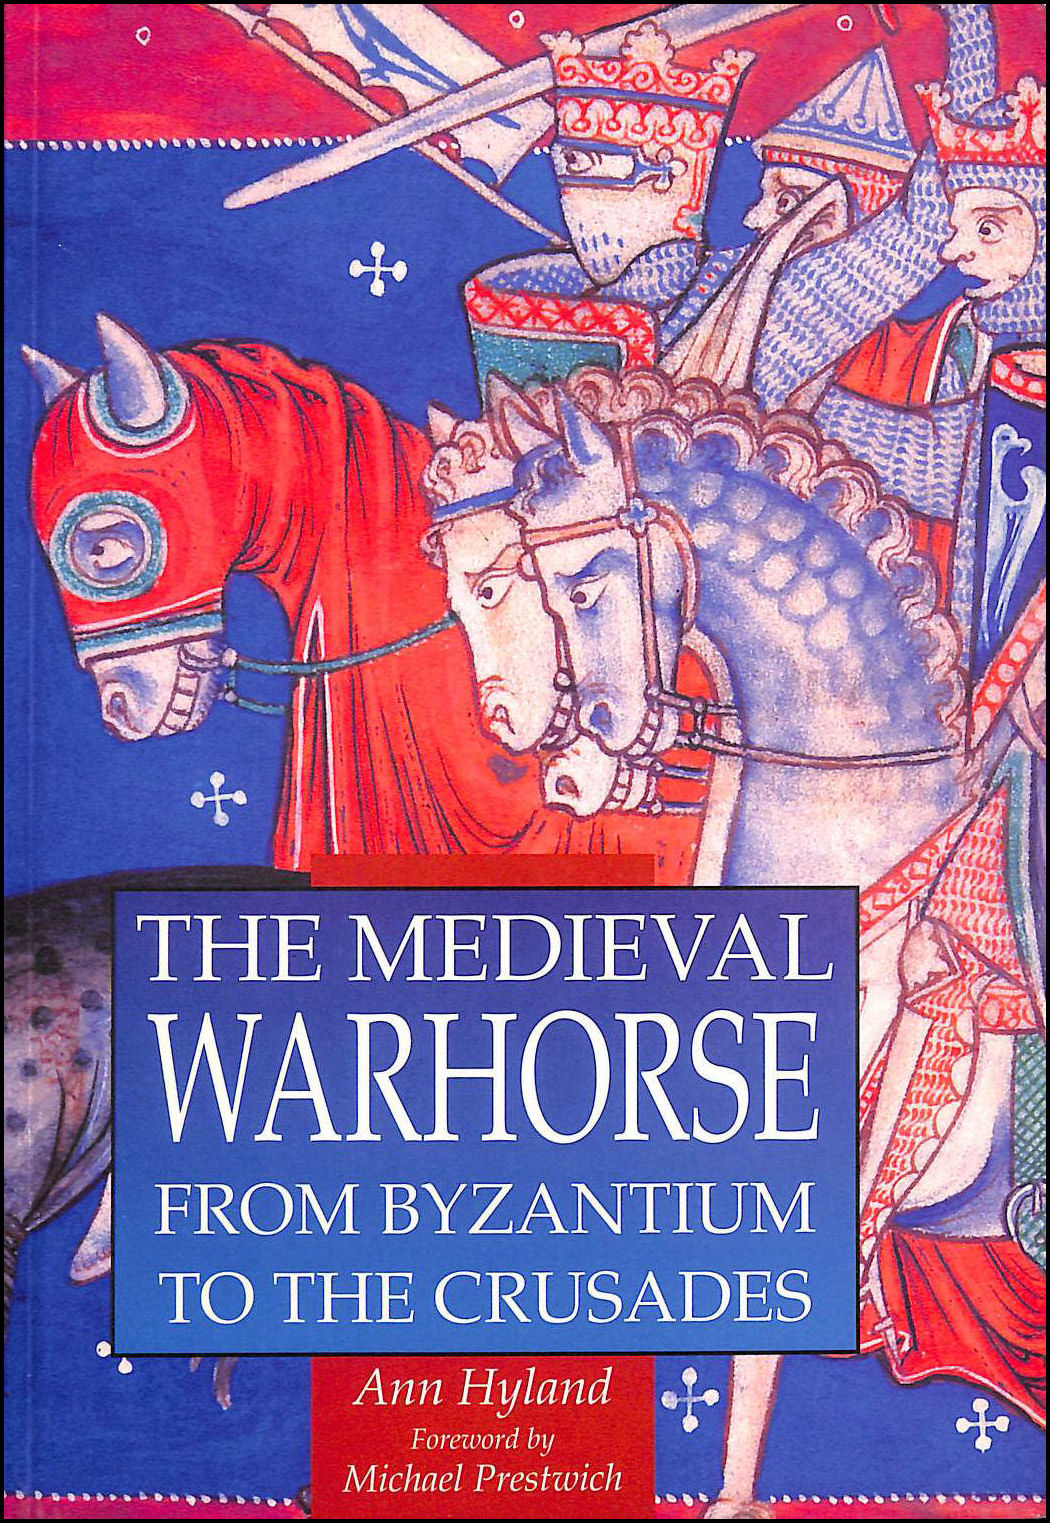 The Medieval Warhorse: From Byzantium to the Crusades (Illustrated History Paperbacks), Hyland, Ann; Prestwich, Michael [Foreword]